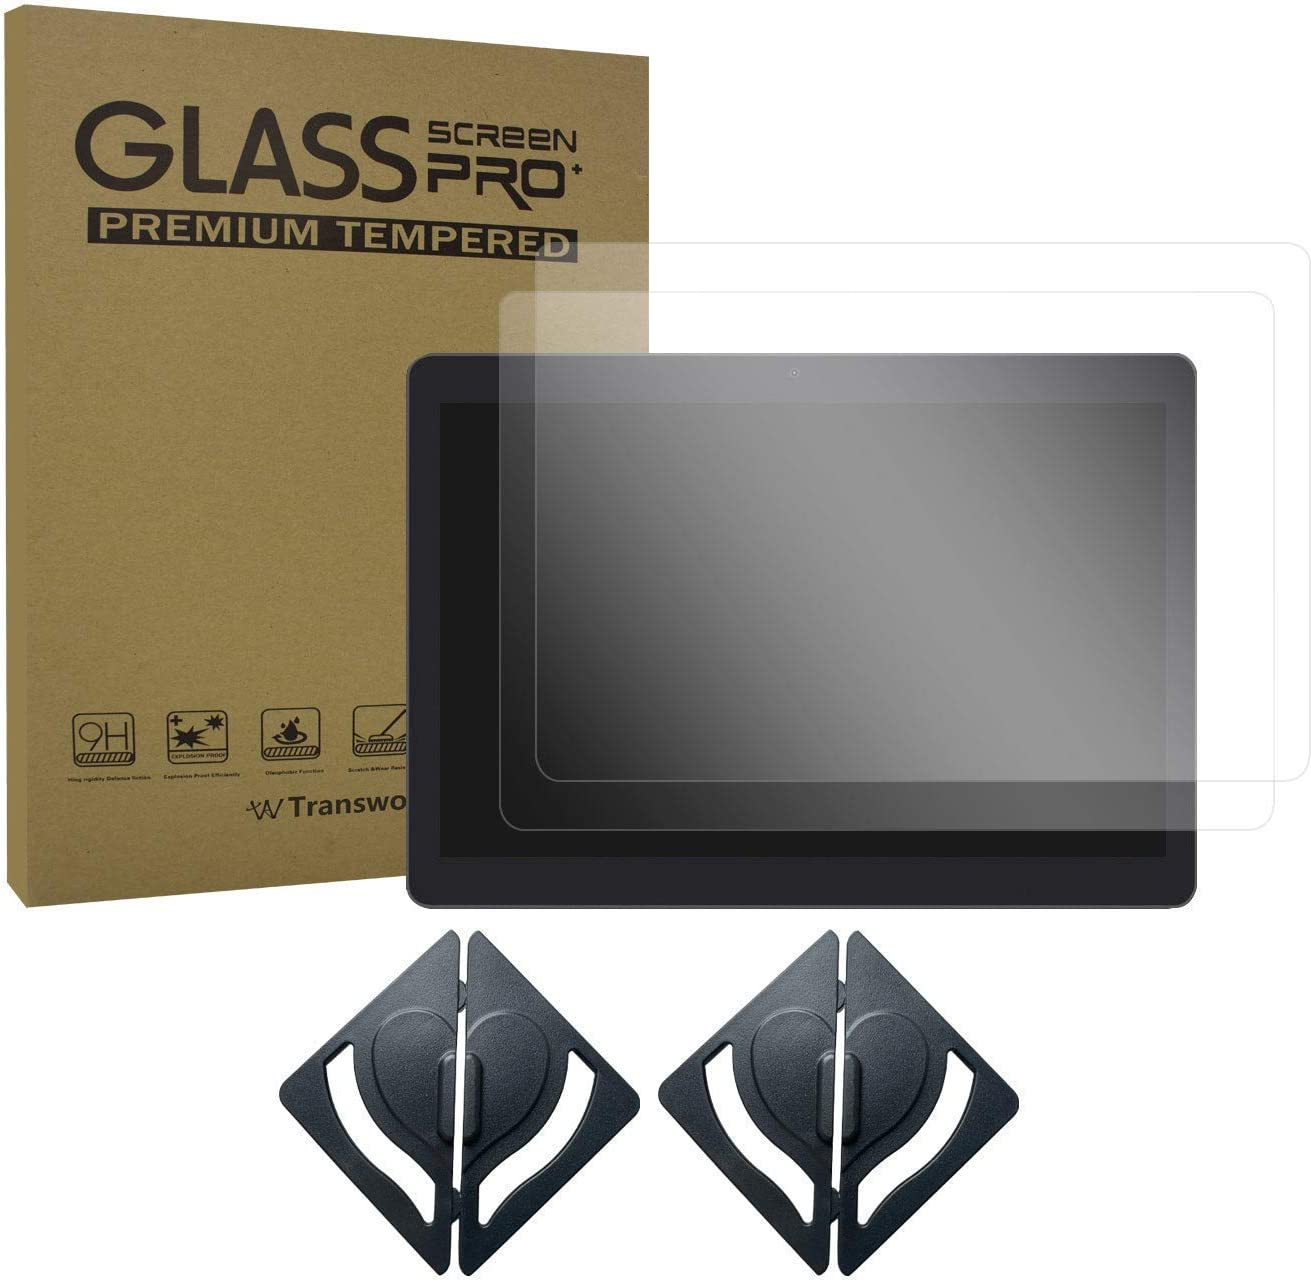 Transwon 2-Pack Tempered Glass Screen Protector & Screen Protector Install Tool Compatible with Yuntab K107/K17, BENEVE 10.1, for Dragon Touch K10 10.1, YELLYOUTH/BEISTA 10.1